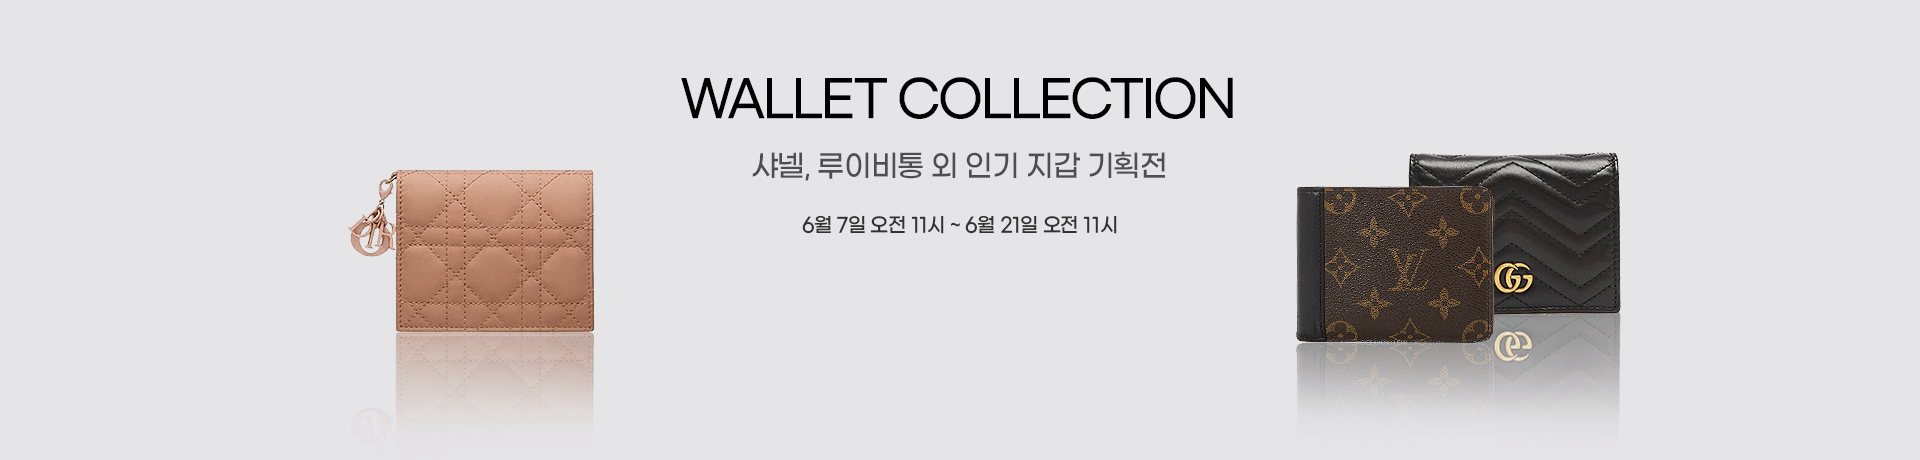 210607_yh_wallet-collection_pc_f2f2f2